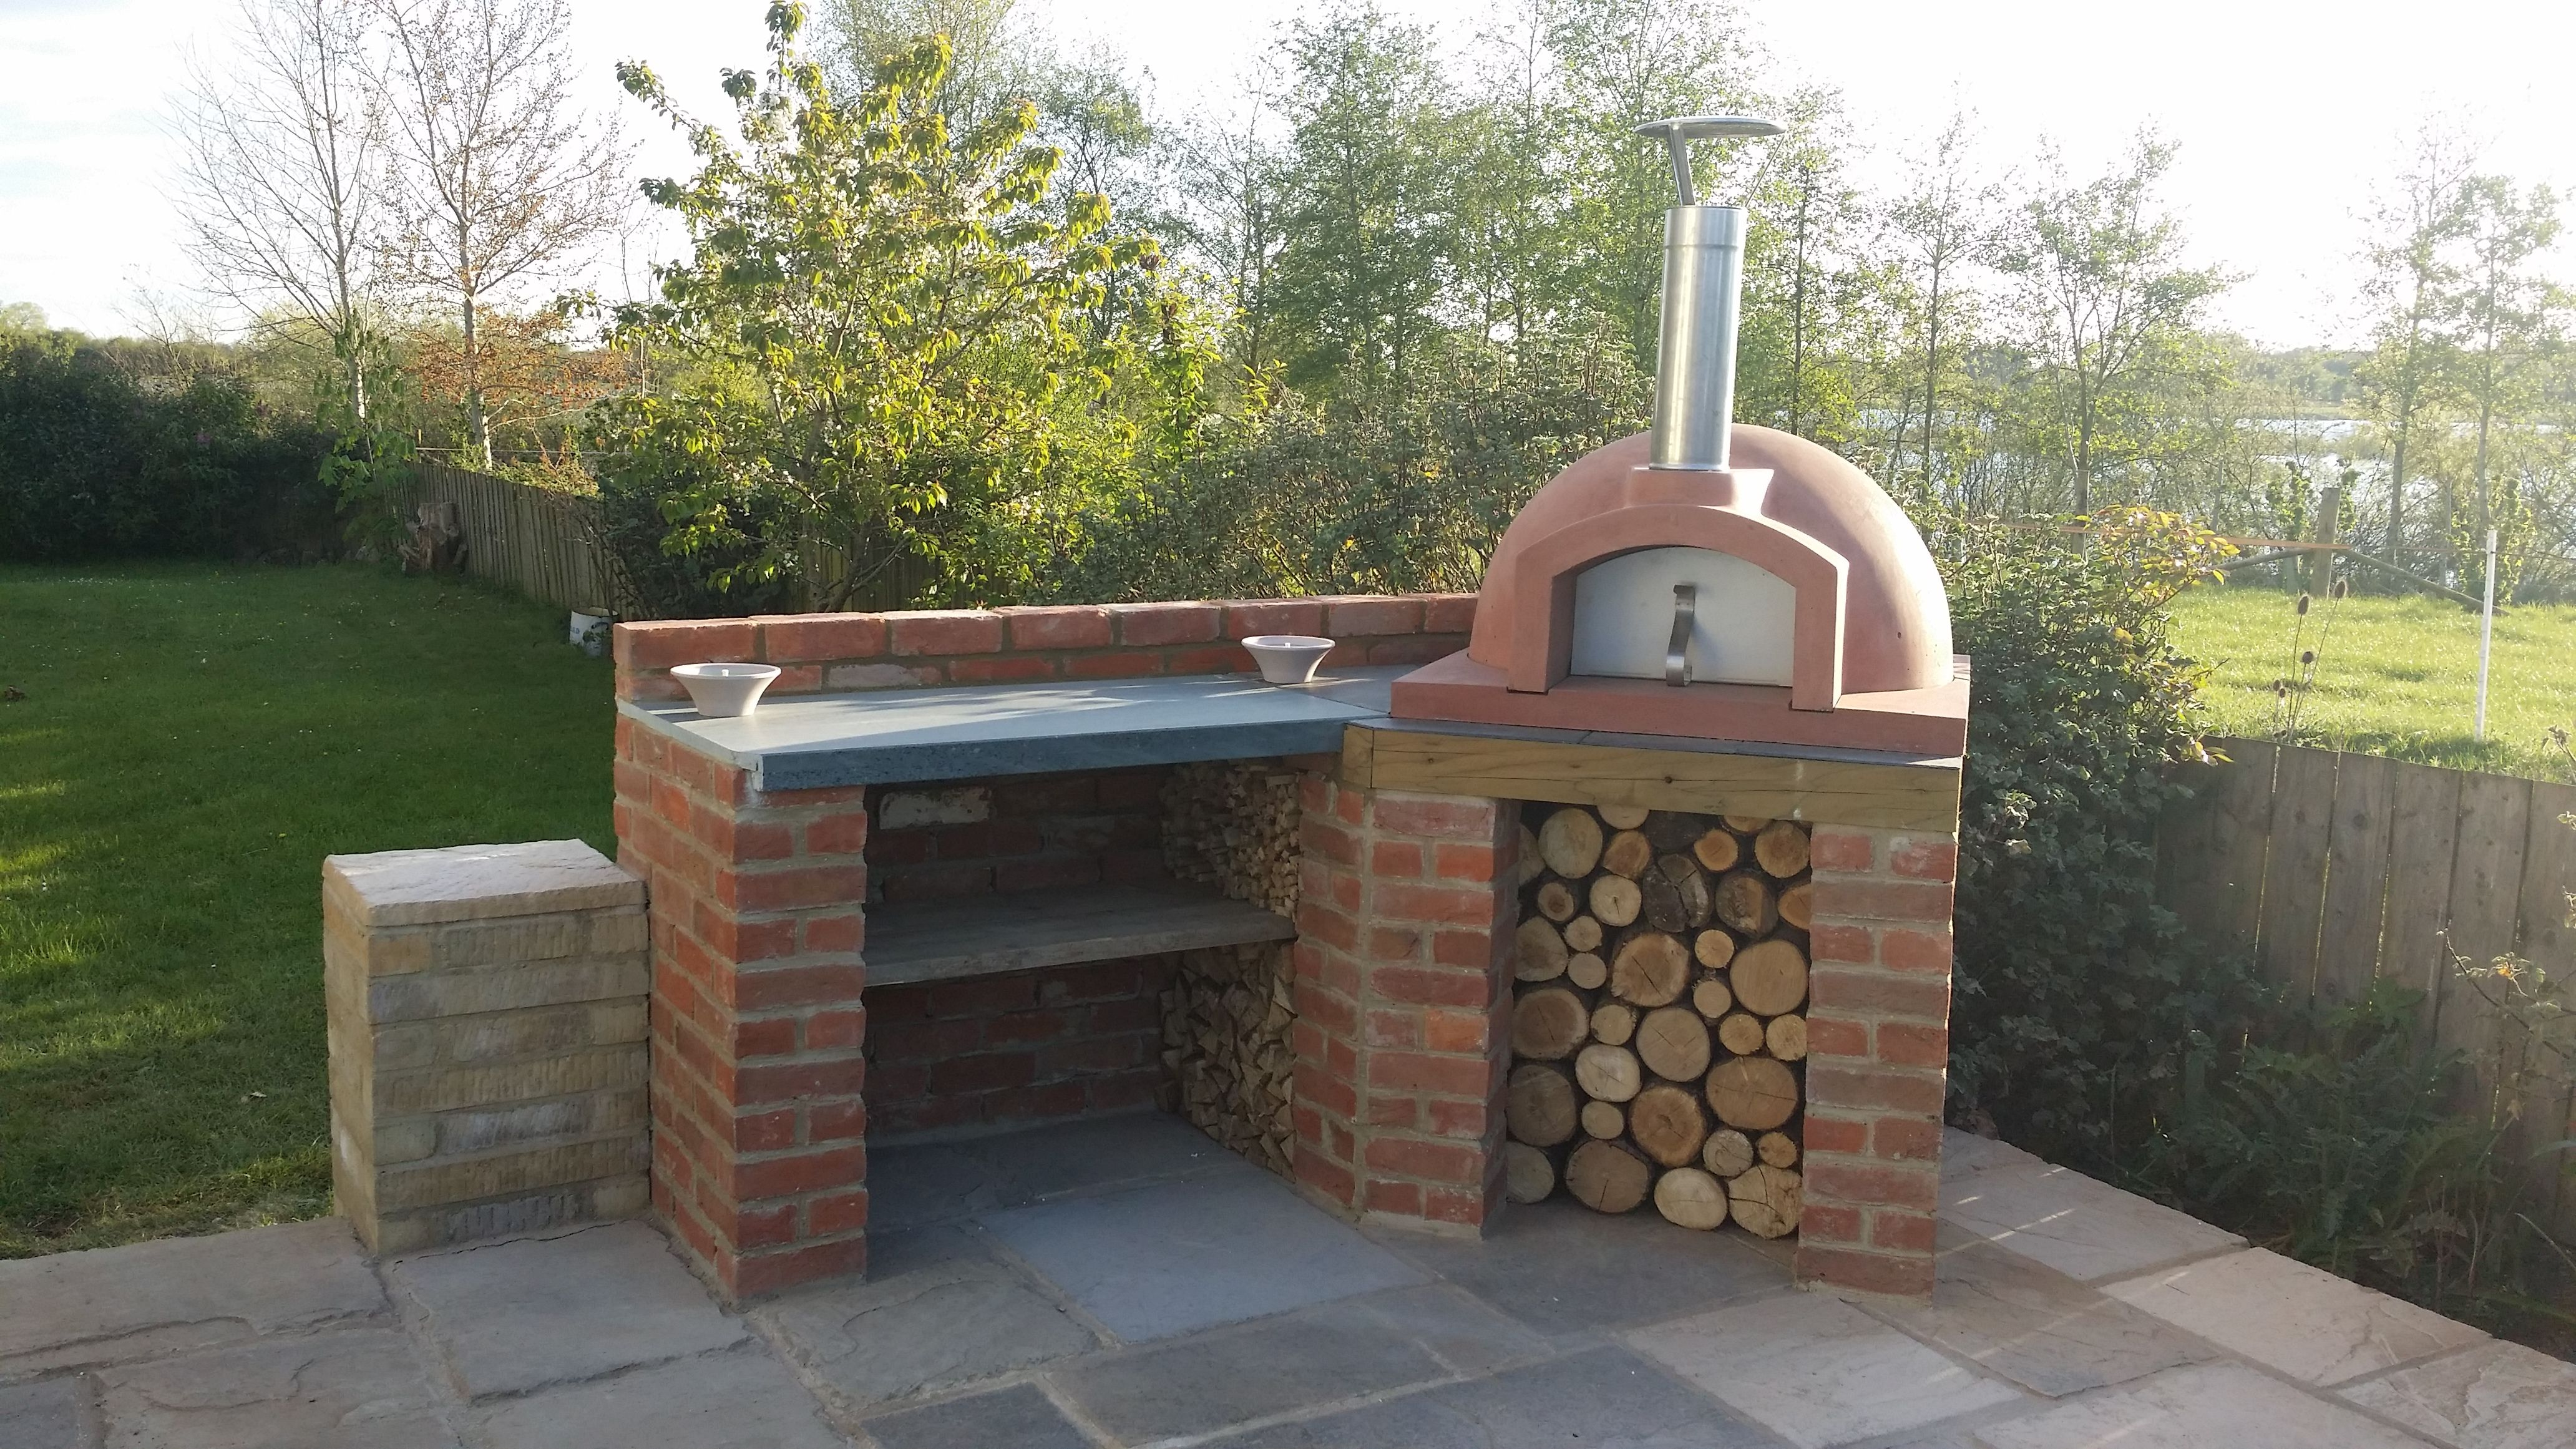 Pin by Irmina Miernikiewicz on Ogród in 2019   Pizza oven ...